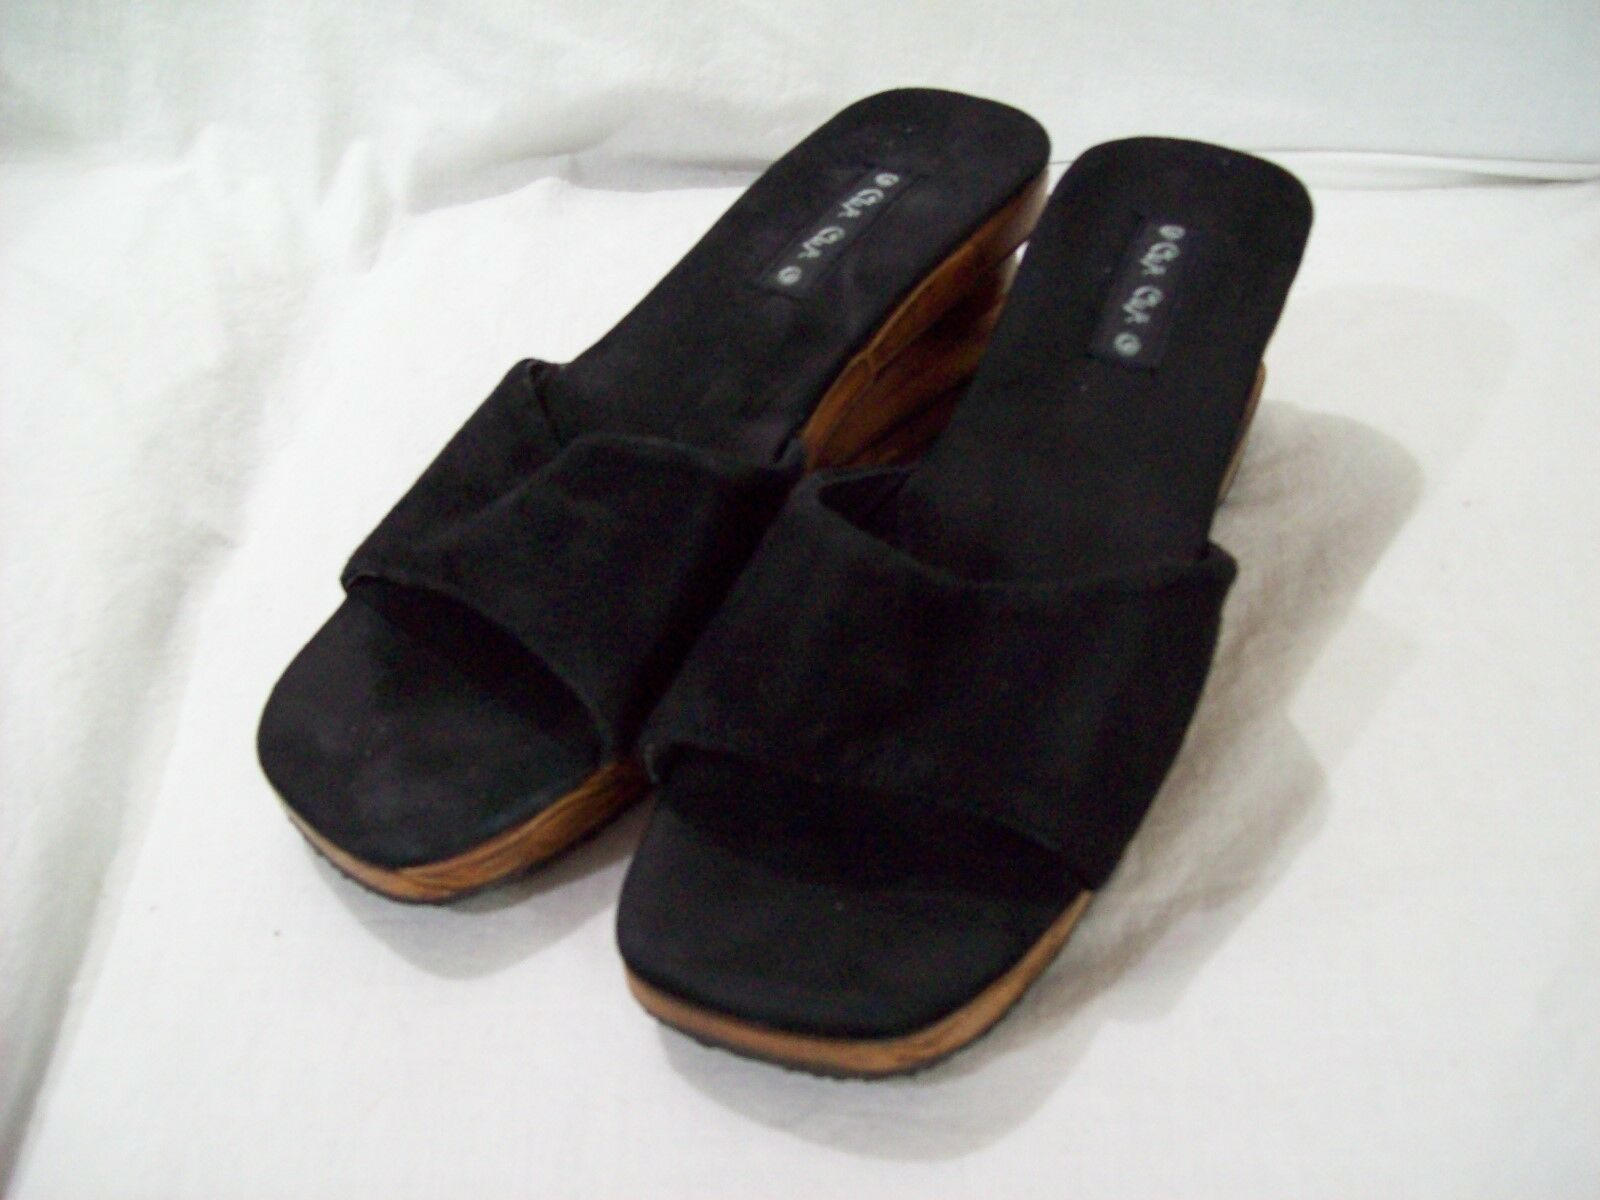 CHA CHA Women's WOODEN Sandals Black Suede Carved Wooden Ball in Heel sz 6